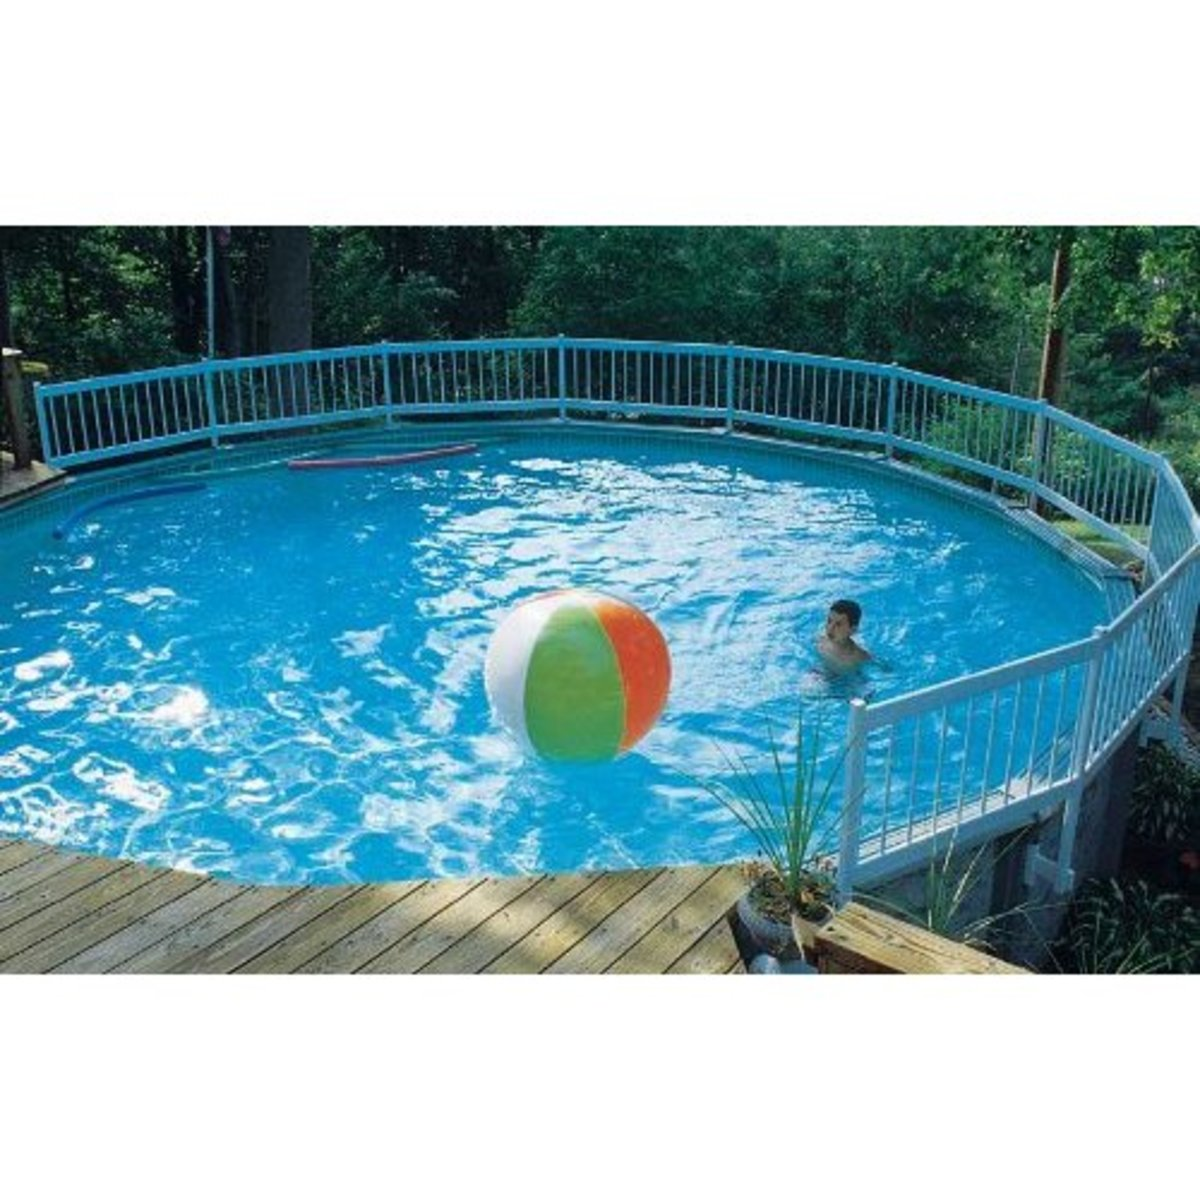 Above ground pools are fun for the whole family!